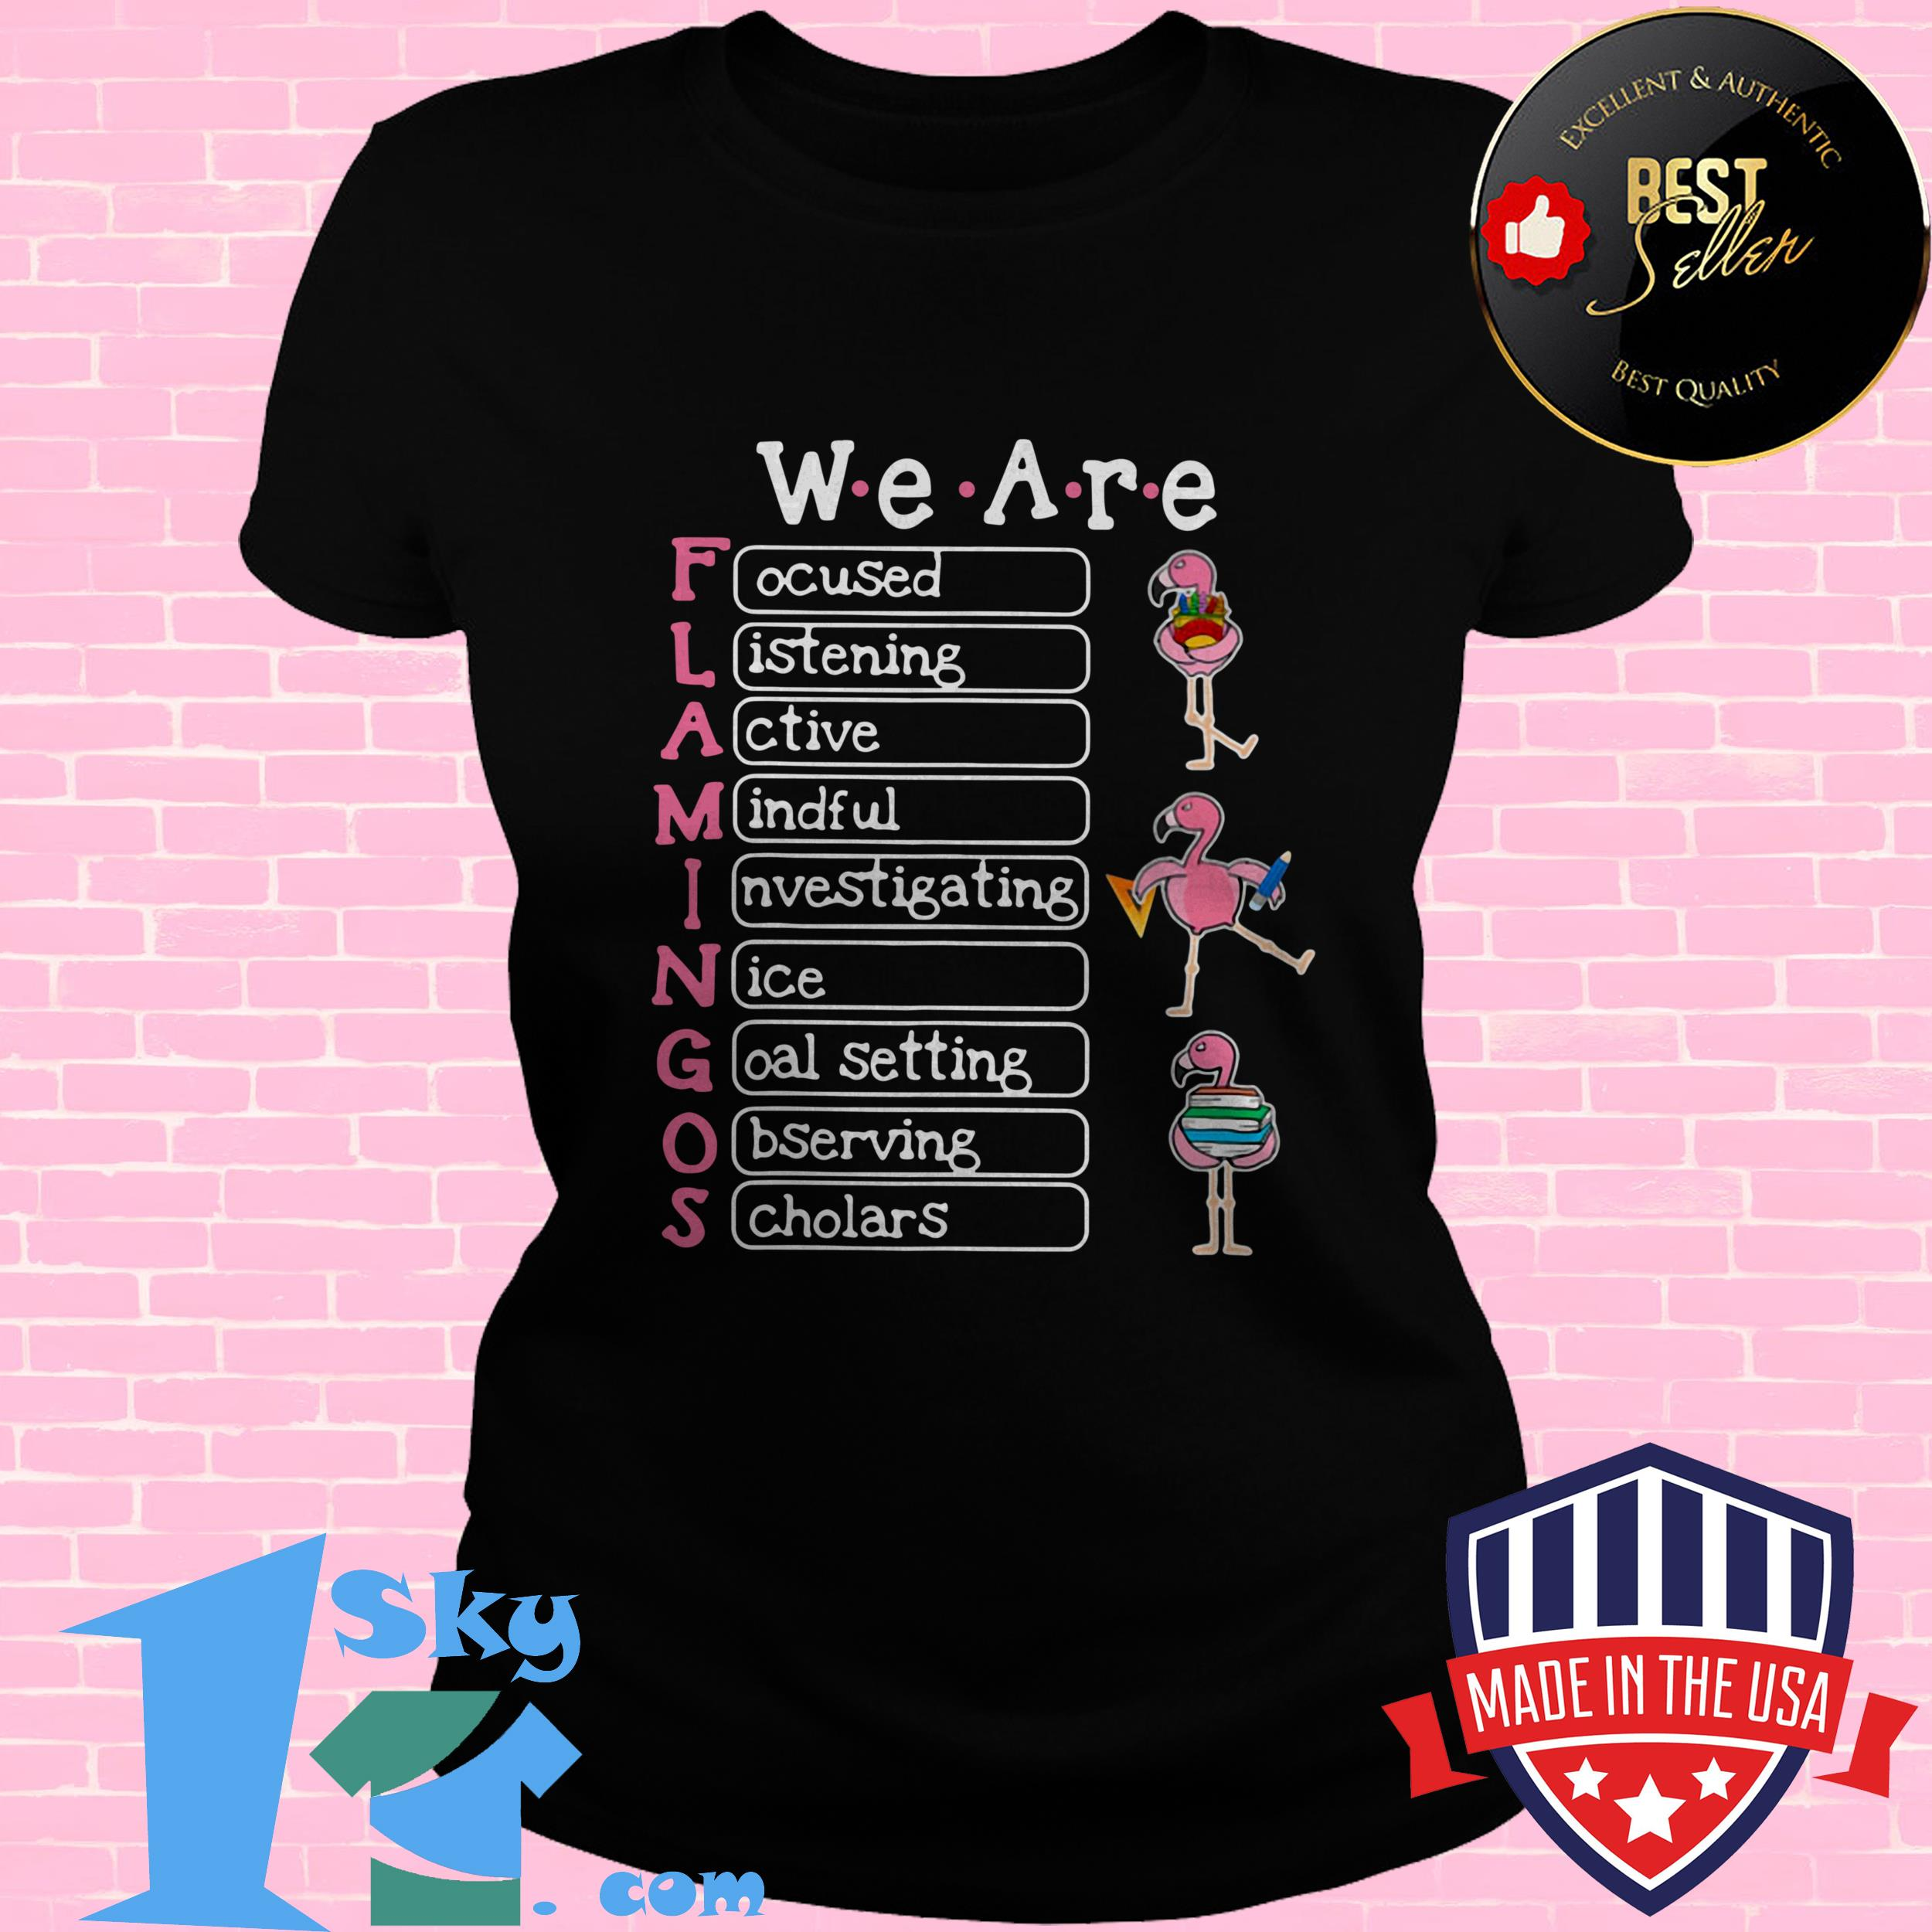 in this classroom we are flamingos focused listening active mindful poster ladies tee - In This Classroom We are Flamingos Focused Listening Active Mindful Poster shirt